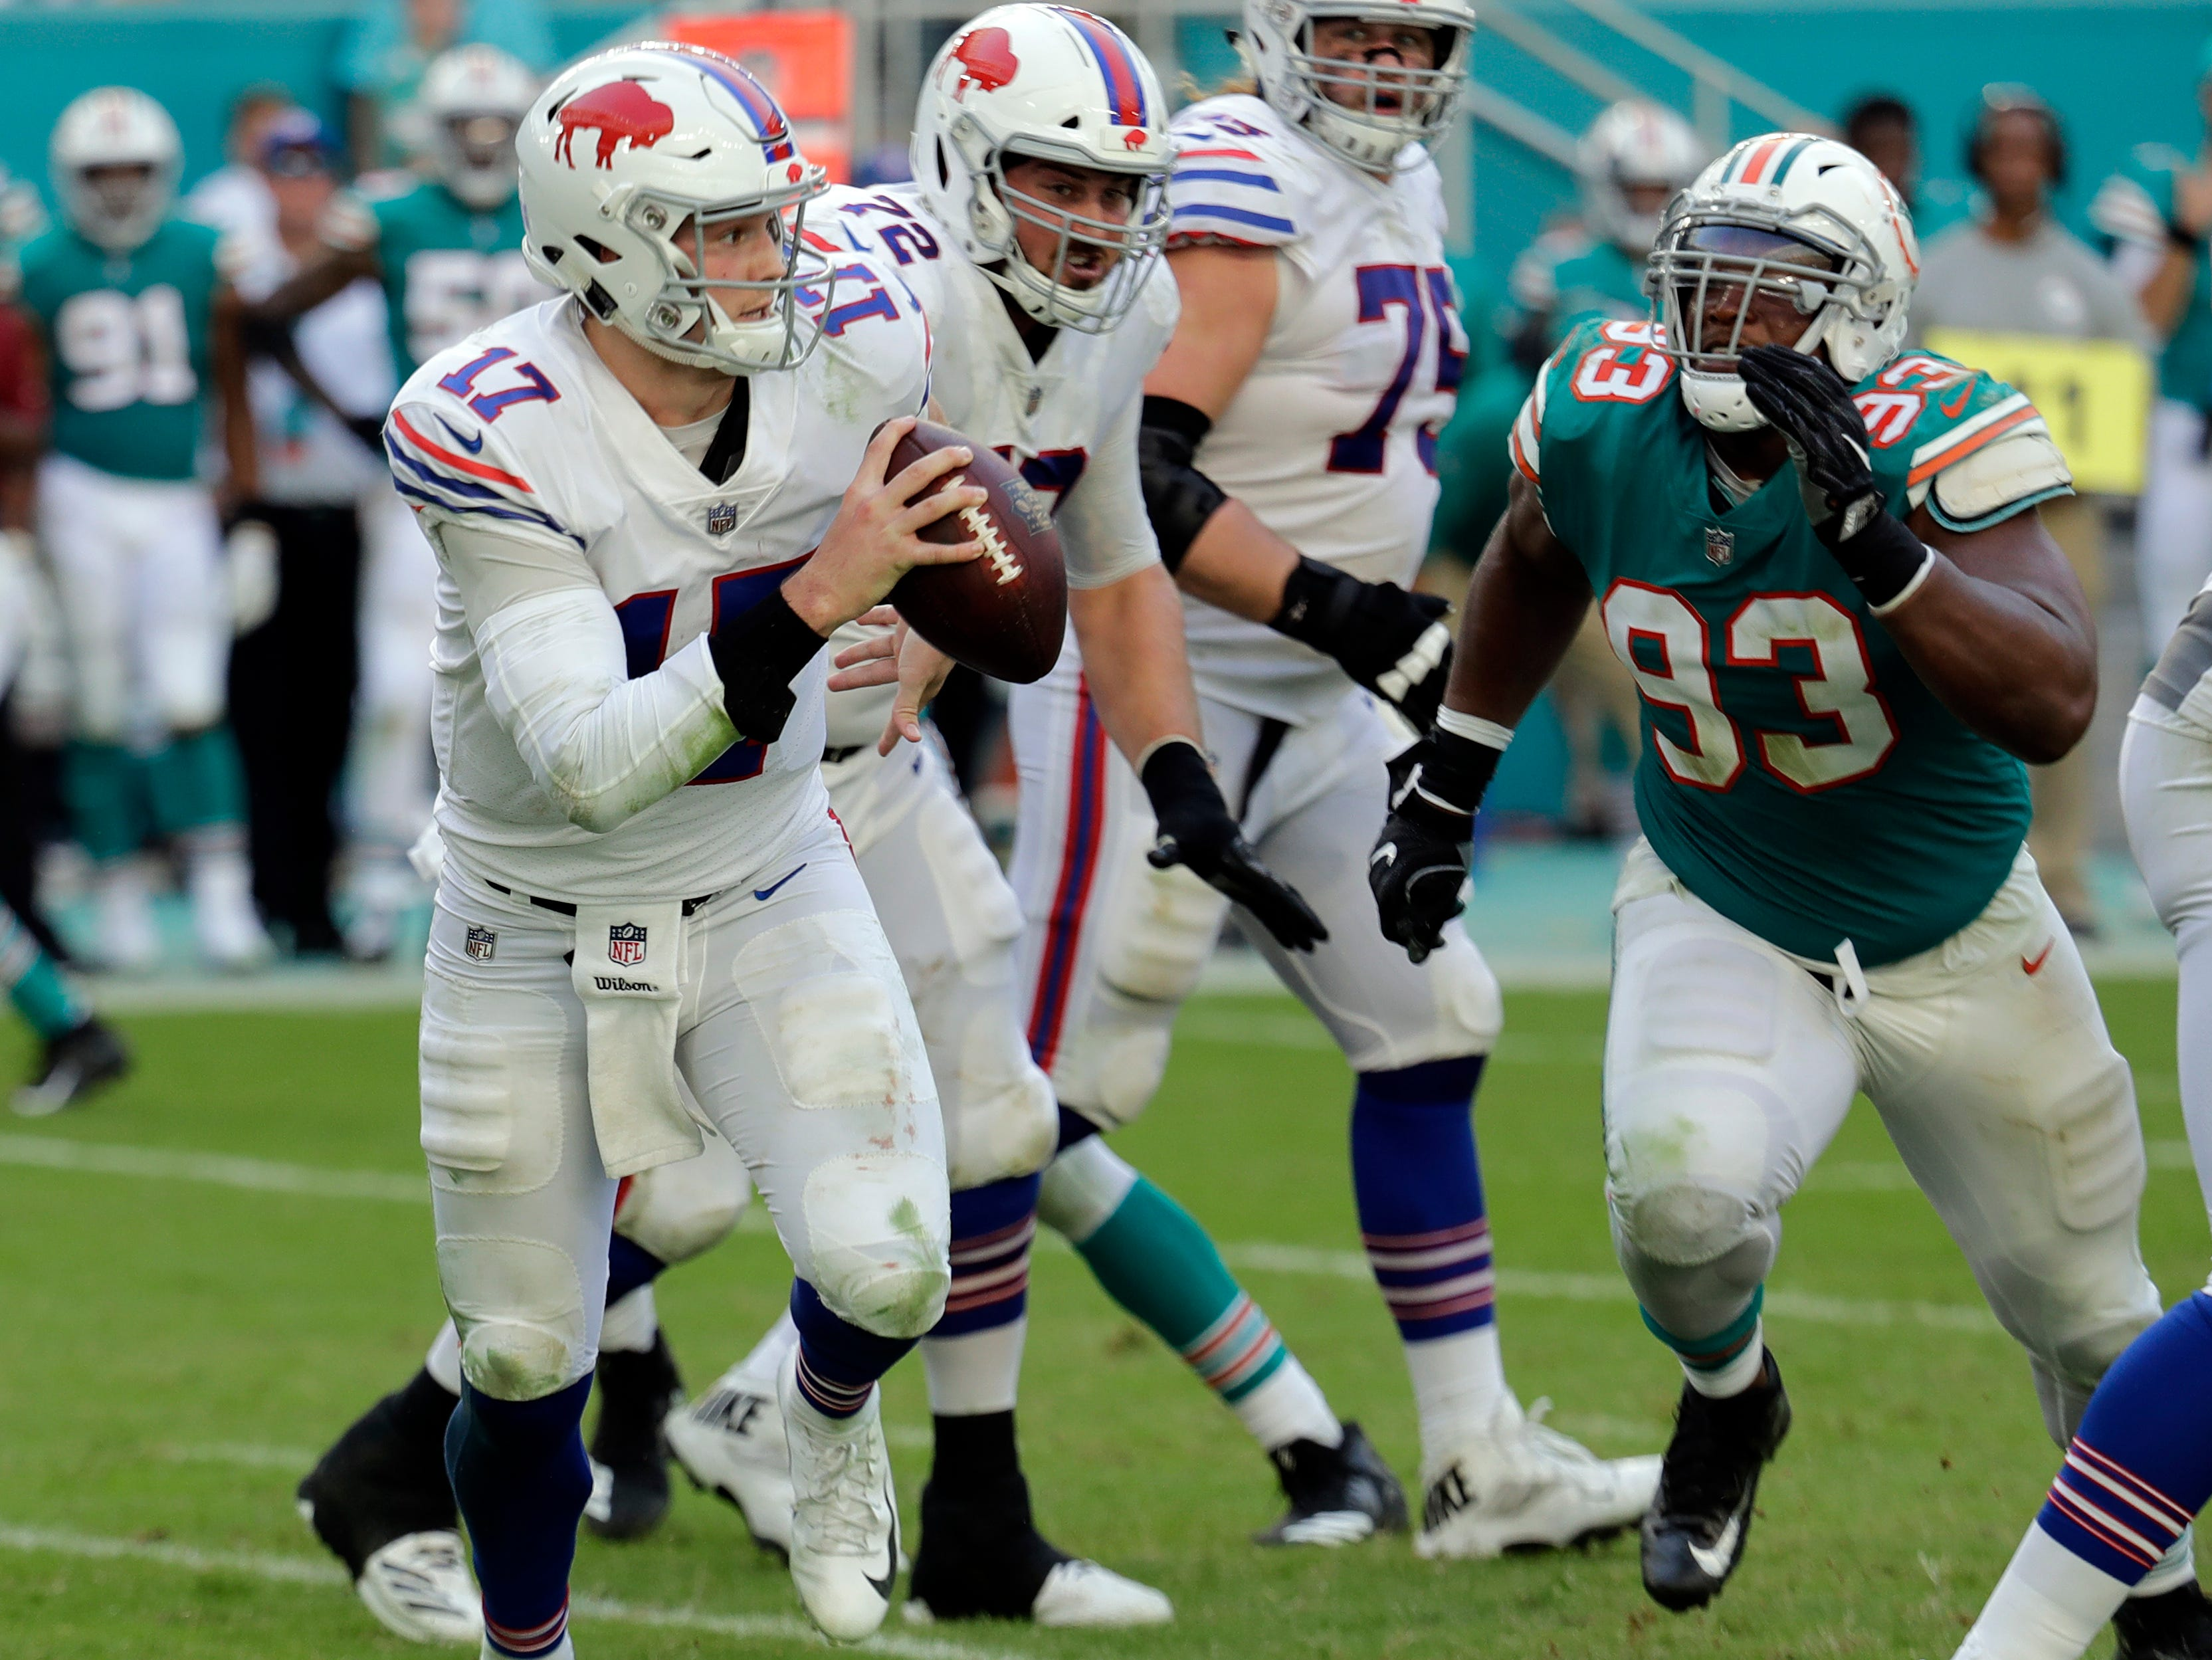 Buffalo Bills quarterback Josh Allen (17) looks to pass, during the second half of an NFL football game against the Miami Dolphins, Sunday, Dec. 2, 2018, in Miami Gardens, Fla. (AP Photo/Lynne Sladky)